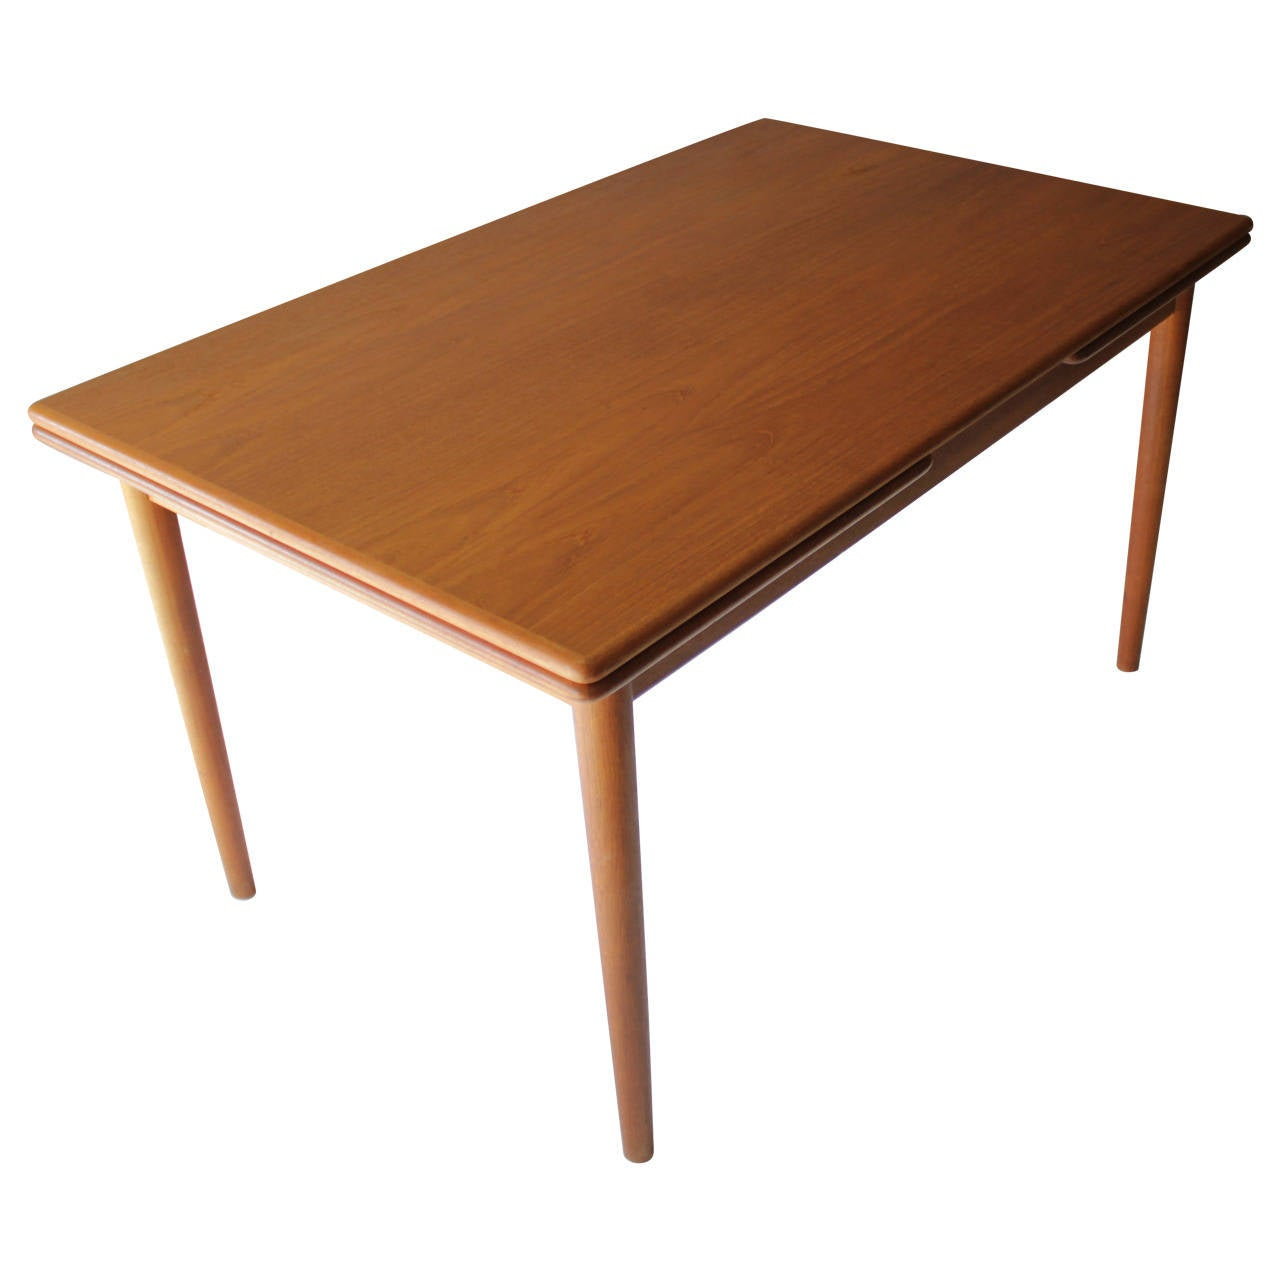 Danish teak dining room table with two leaves for sale at for Dining room tables with leaves